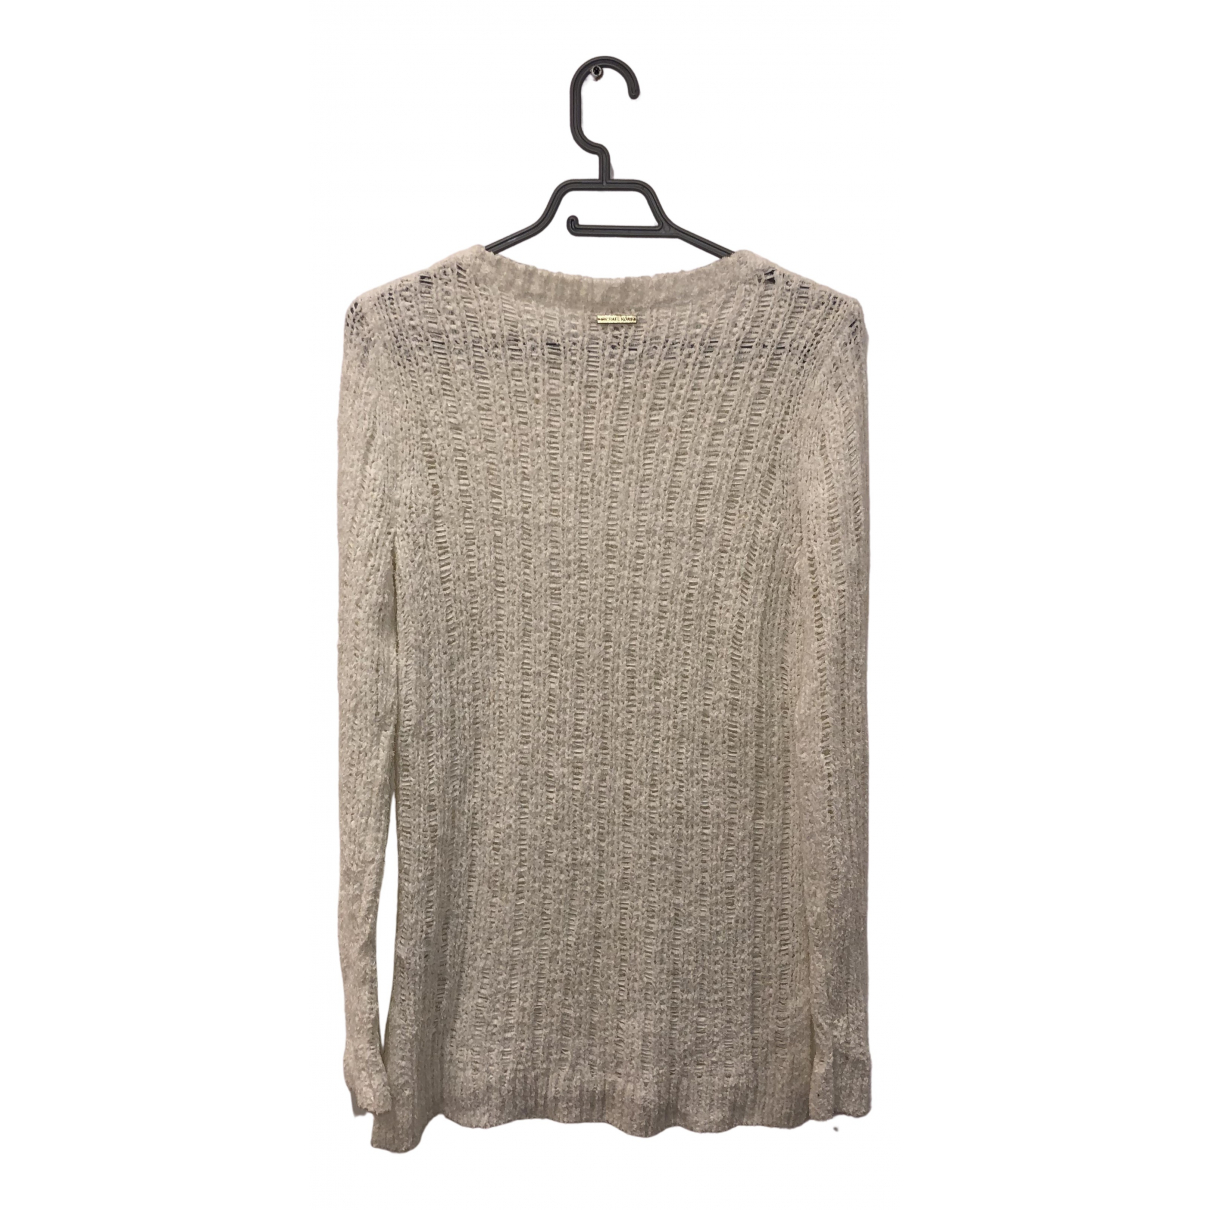 Michael Kors N White Cotton Knitwear for Women M International